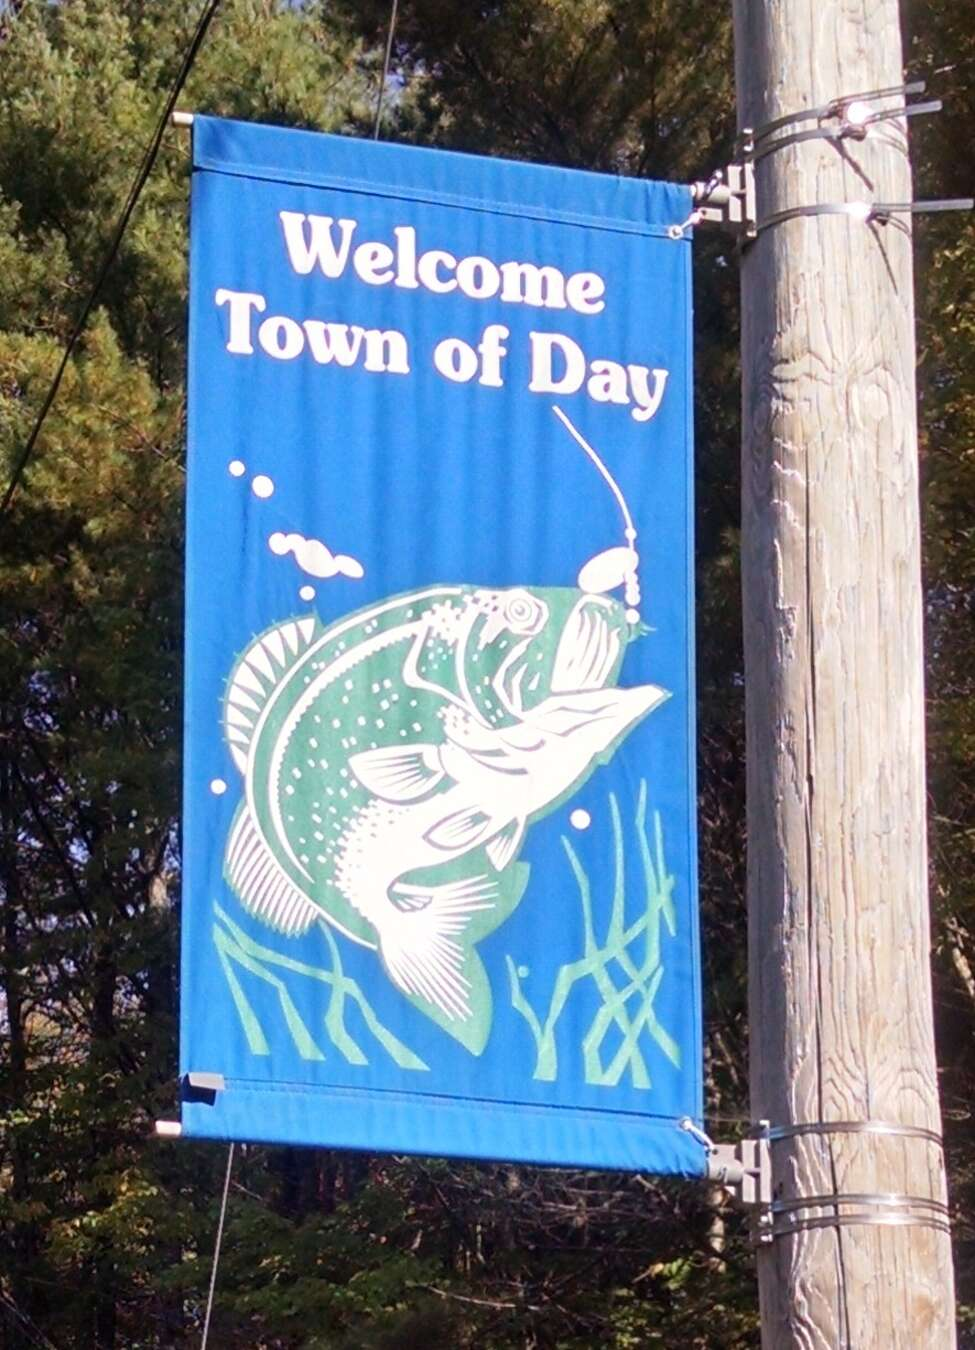 Entrance to the town of Day on West Mountain Road. (Tim Blydenburgh)